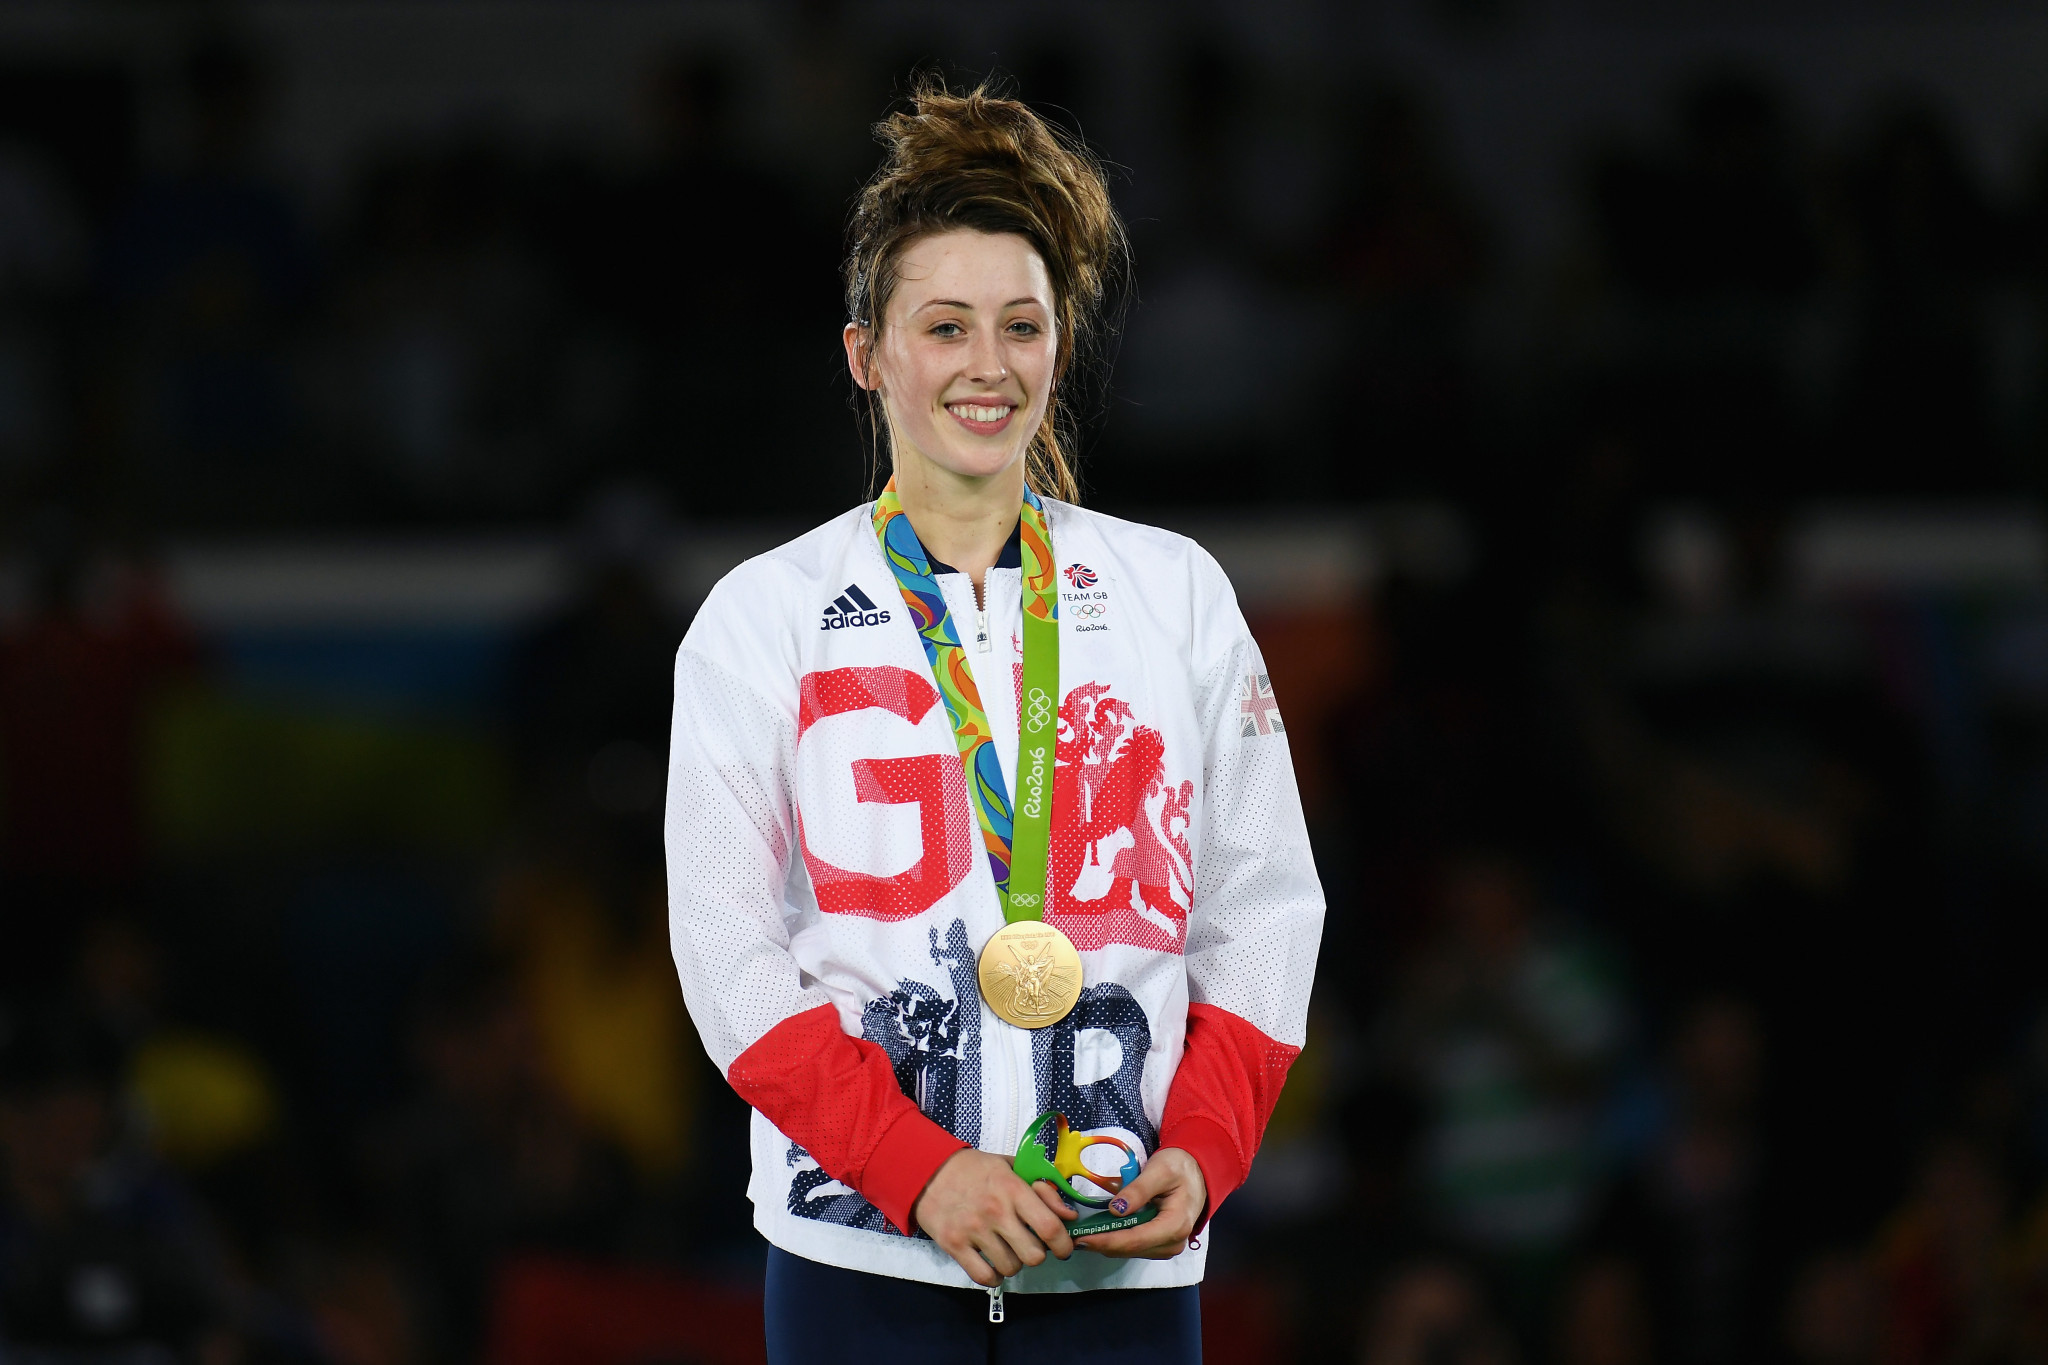 Jade Jones' gold was one of three taekwondo medals Britain won at the Rio 2016 Olympics ©Getty Images